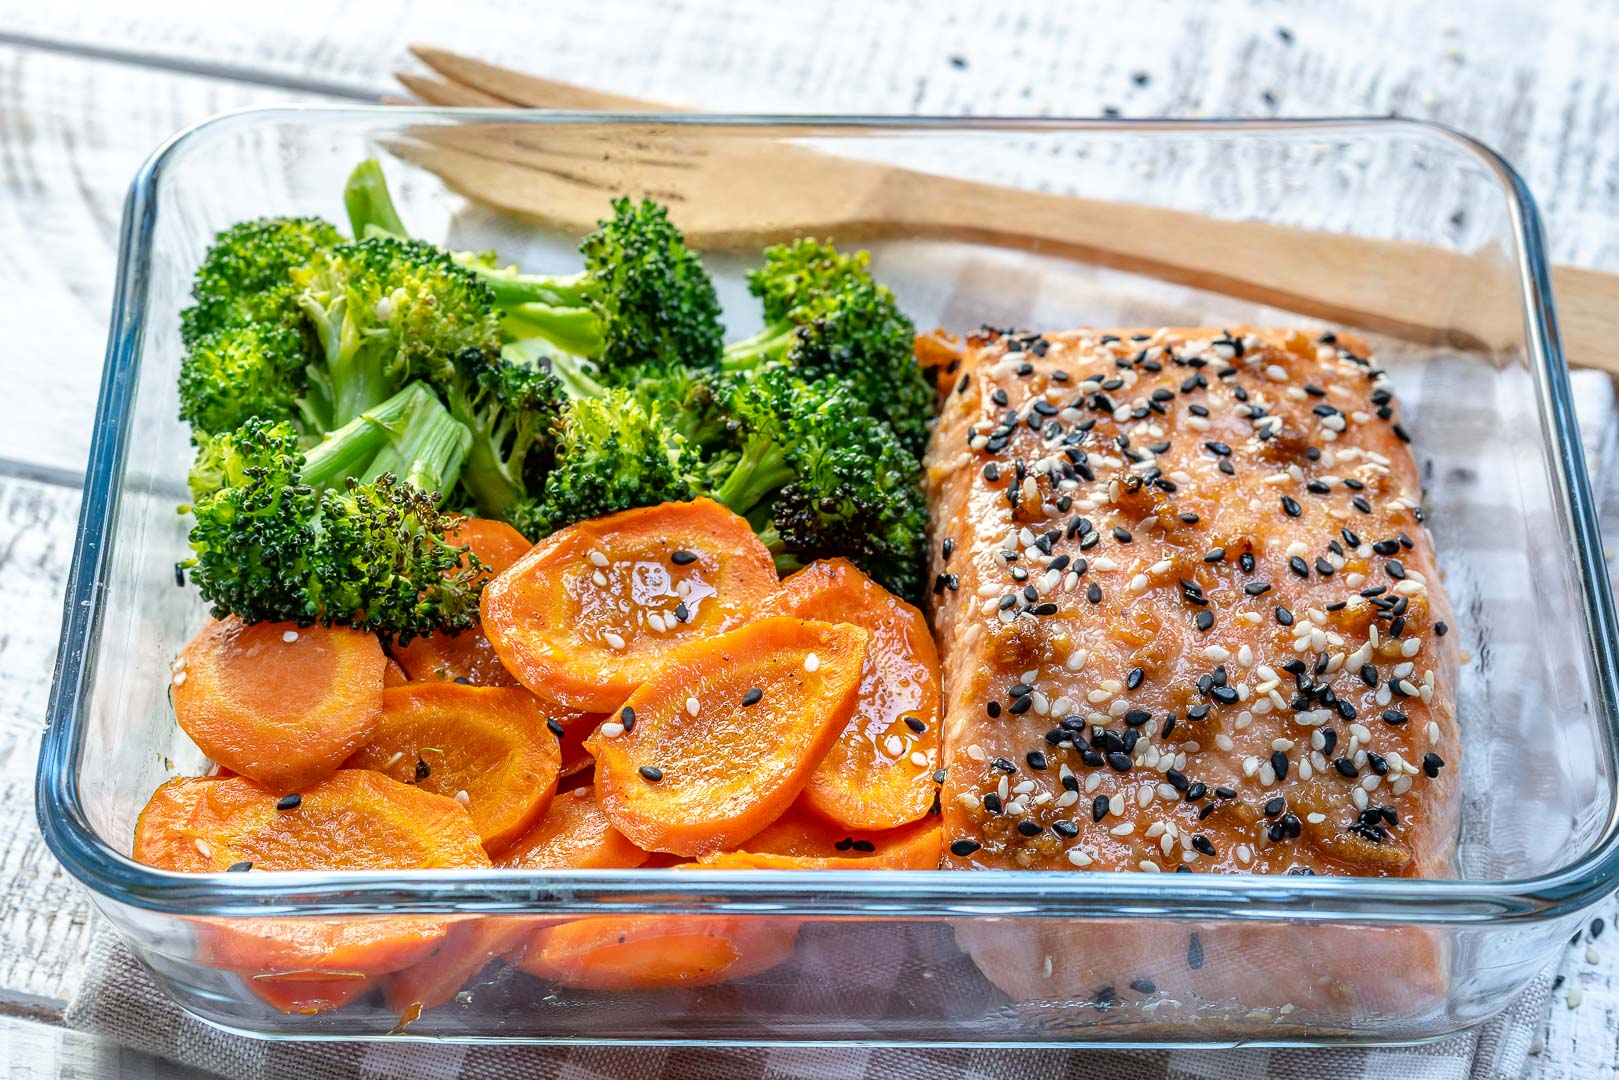 Sesame Seed Teriyaki Salmon with Broccoli Carrots